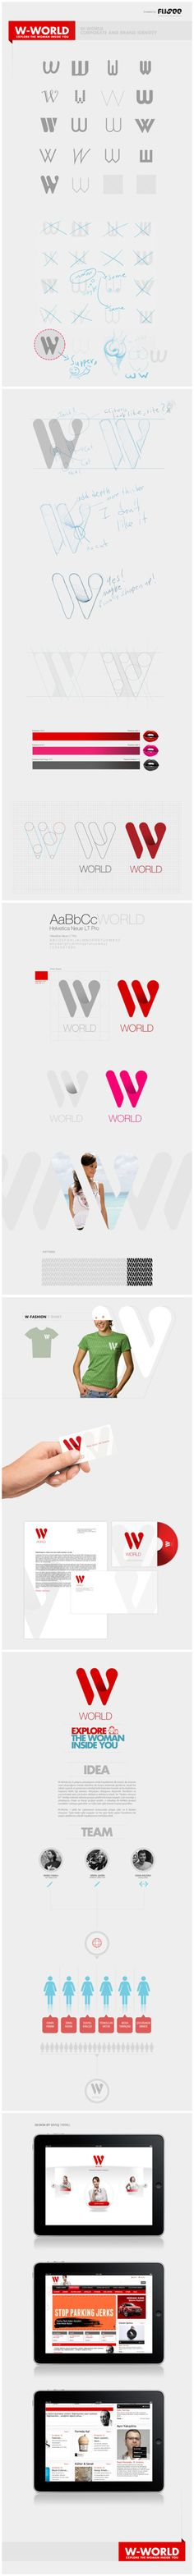 W-WORLD VI设计 | #stationary #corporate #design #corporatedesign #identity #branding #marketing < repinned by www.BlickeDeeler.de | Take a look at www.LogoGestaltung-Hamburg.de